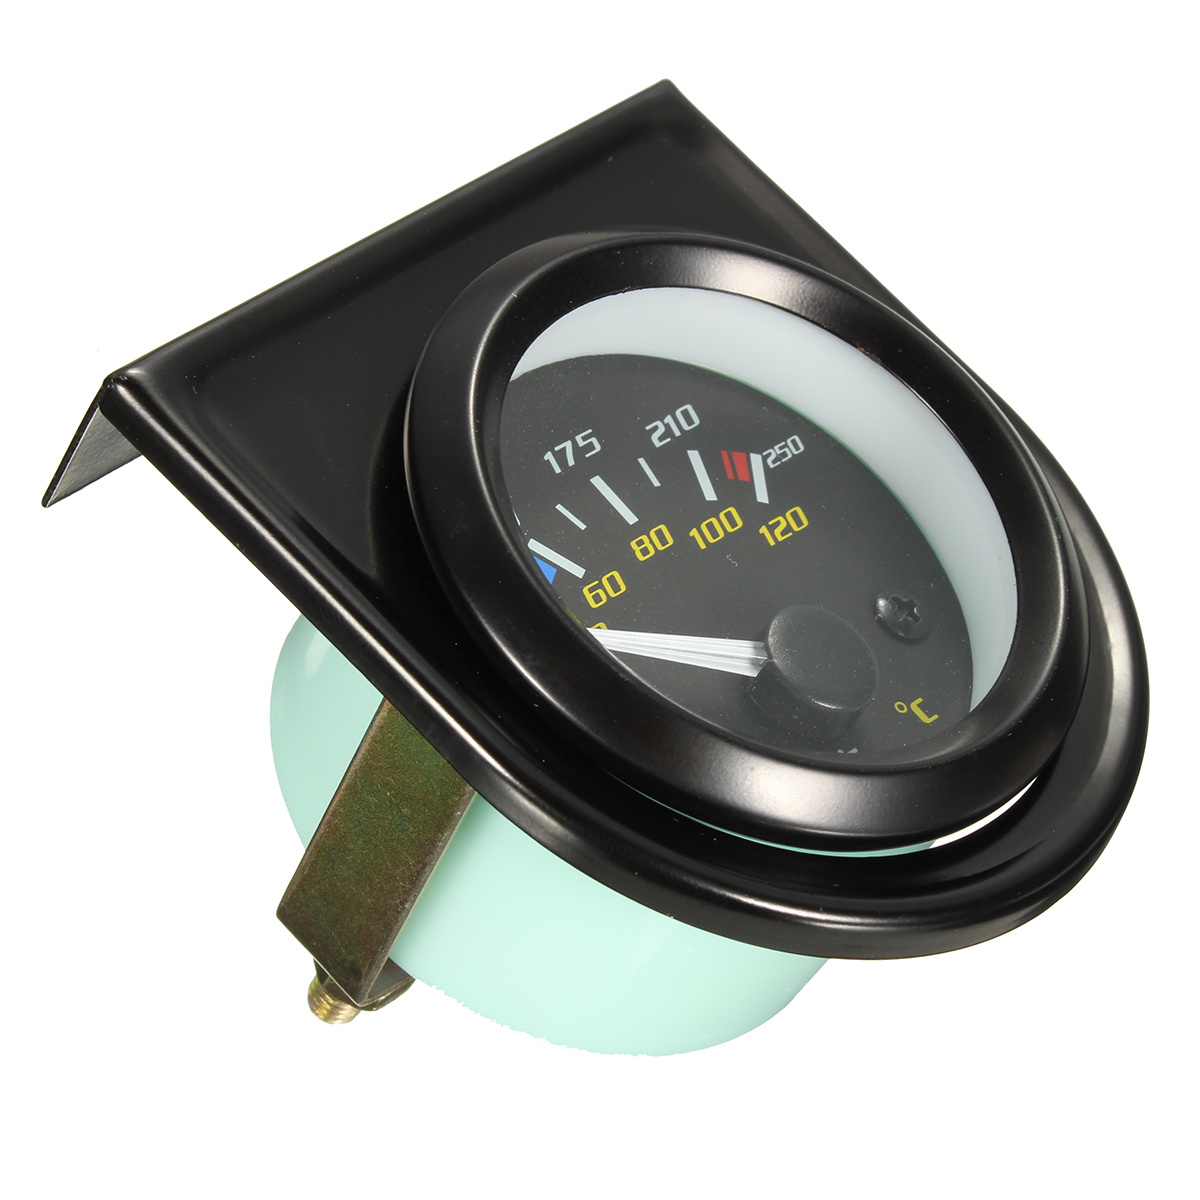 hook up temperature gauge Auto meter custom gauges 20 custom shop  read more find the right gauge for your needs  autometer products 413 w elm st sycamore,.